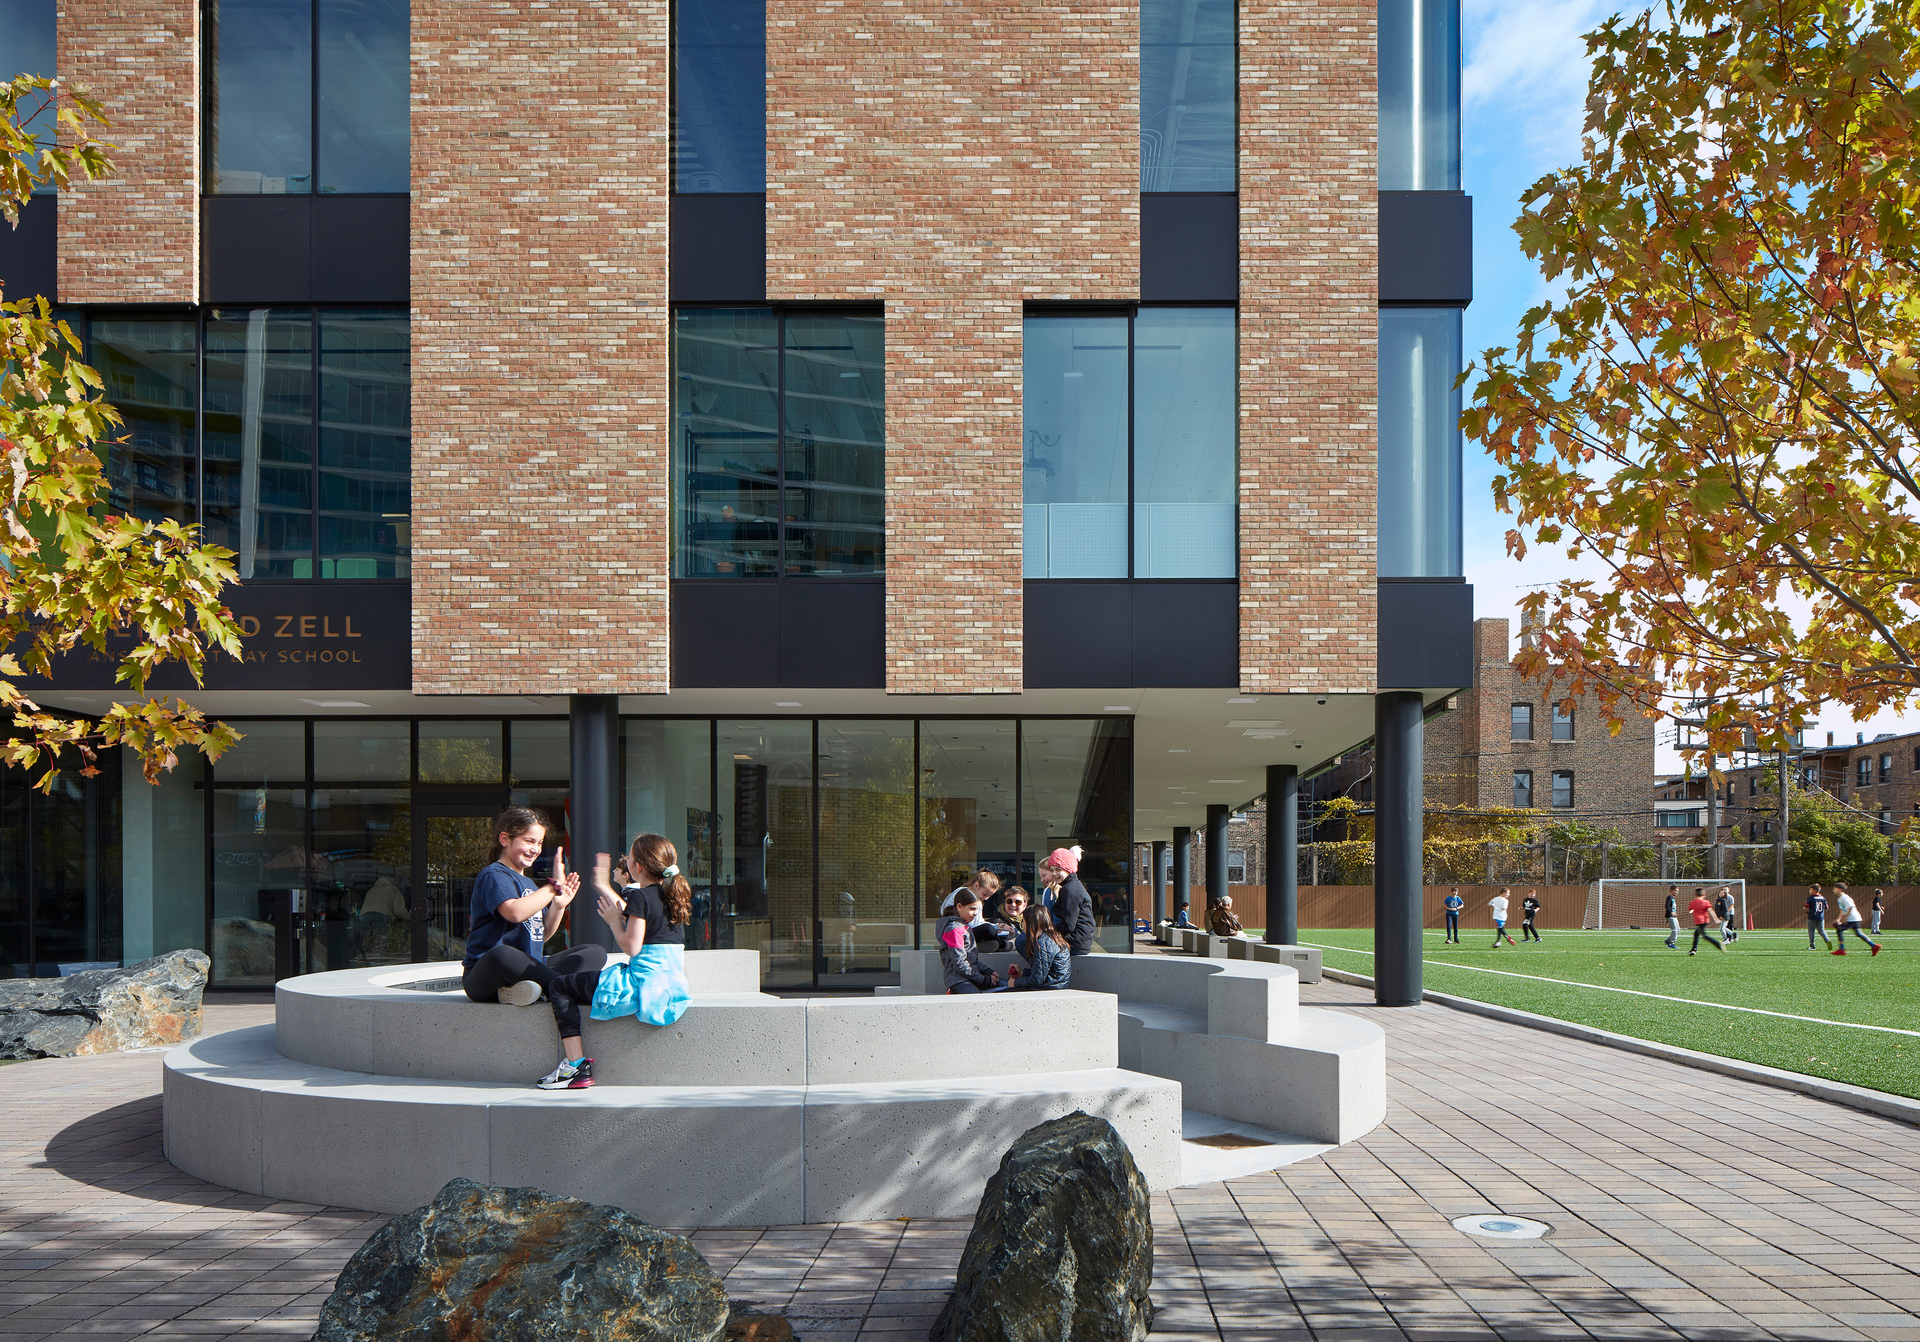 The outdoor entryway and courtyard provide a perfect space for students, visitors, staff and faculty to relax and connect with each other. The brick facade school expansion is placed next to the outdoor soccer field and just behind the courtyard.  Photo by Steve Hall, Hall + Merrick Photographers